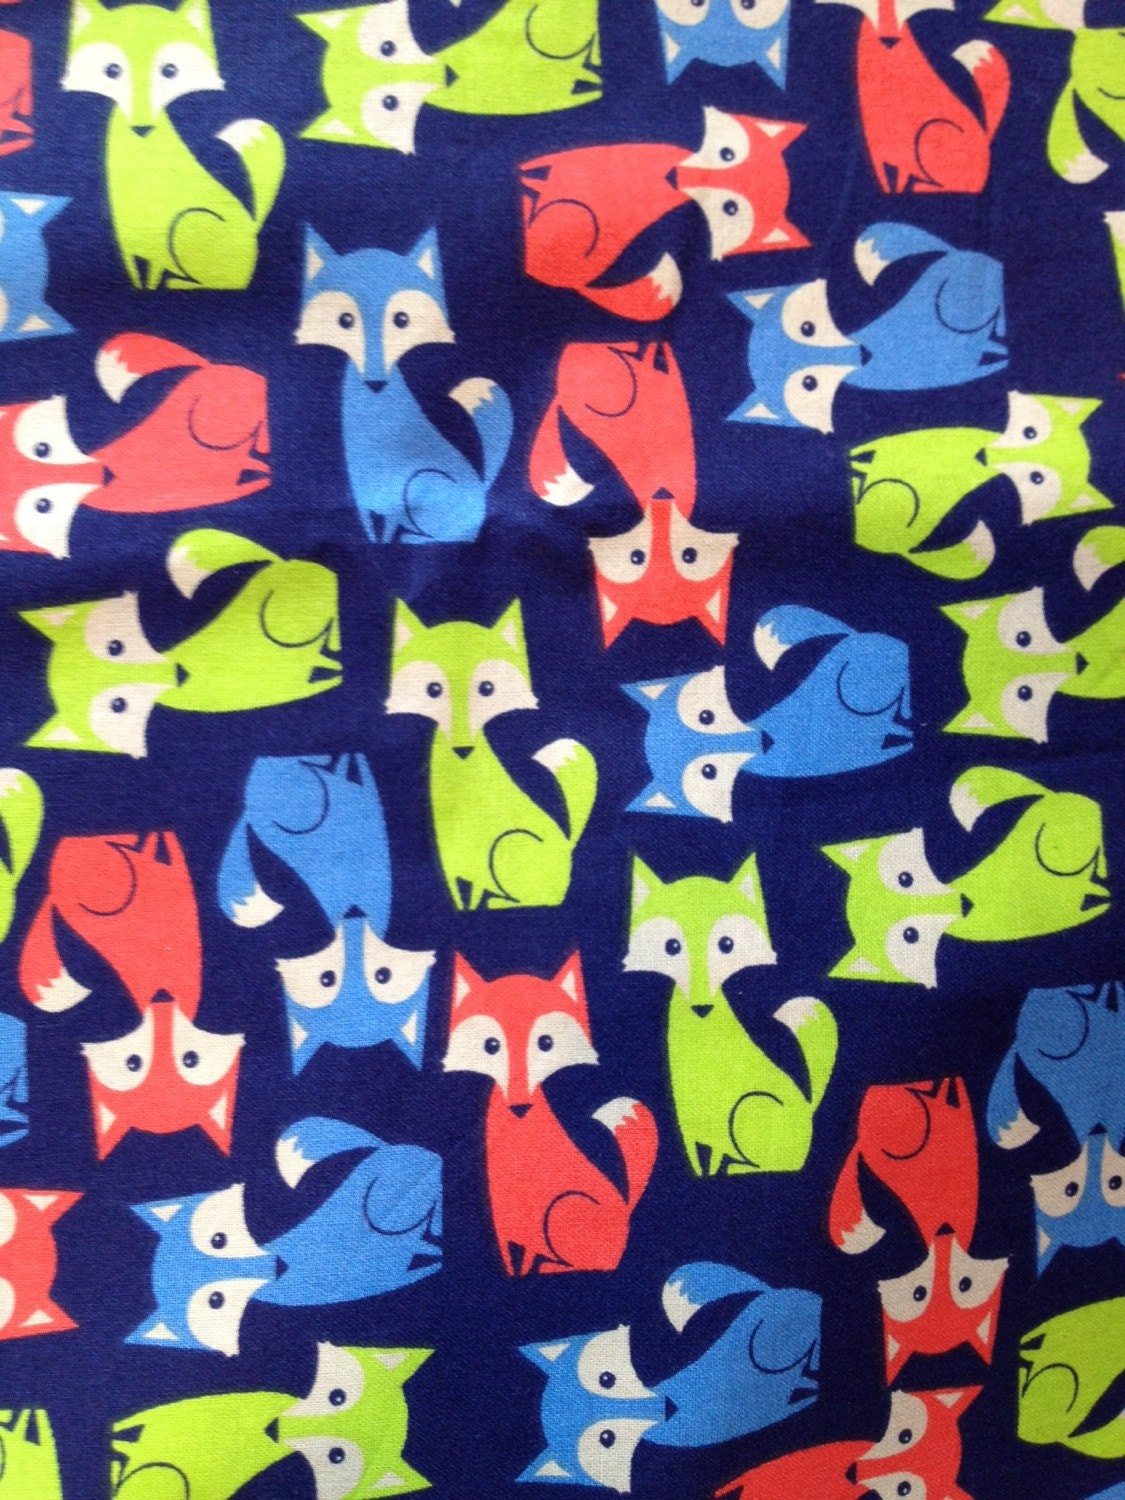 foxes fabric lime orange and blue on navy background. Black Bedroom Furniture Sets. Home Design Ideas